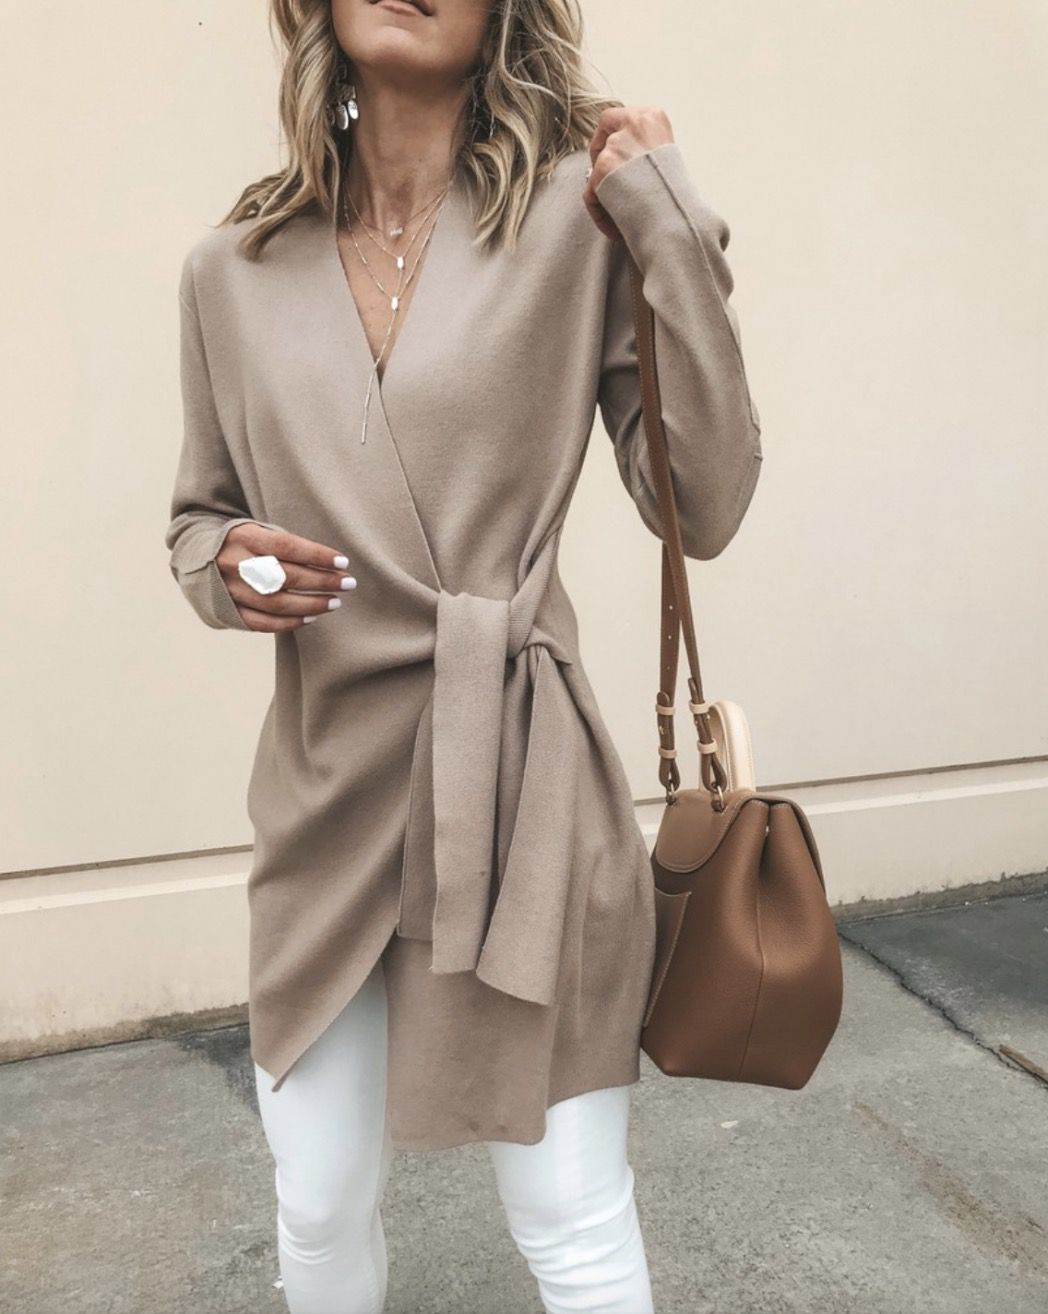 Cute beige cardigan with white jeans